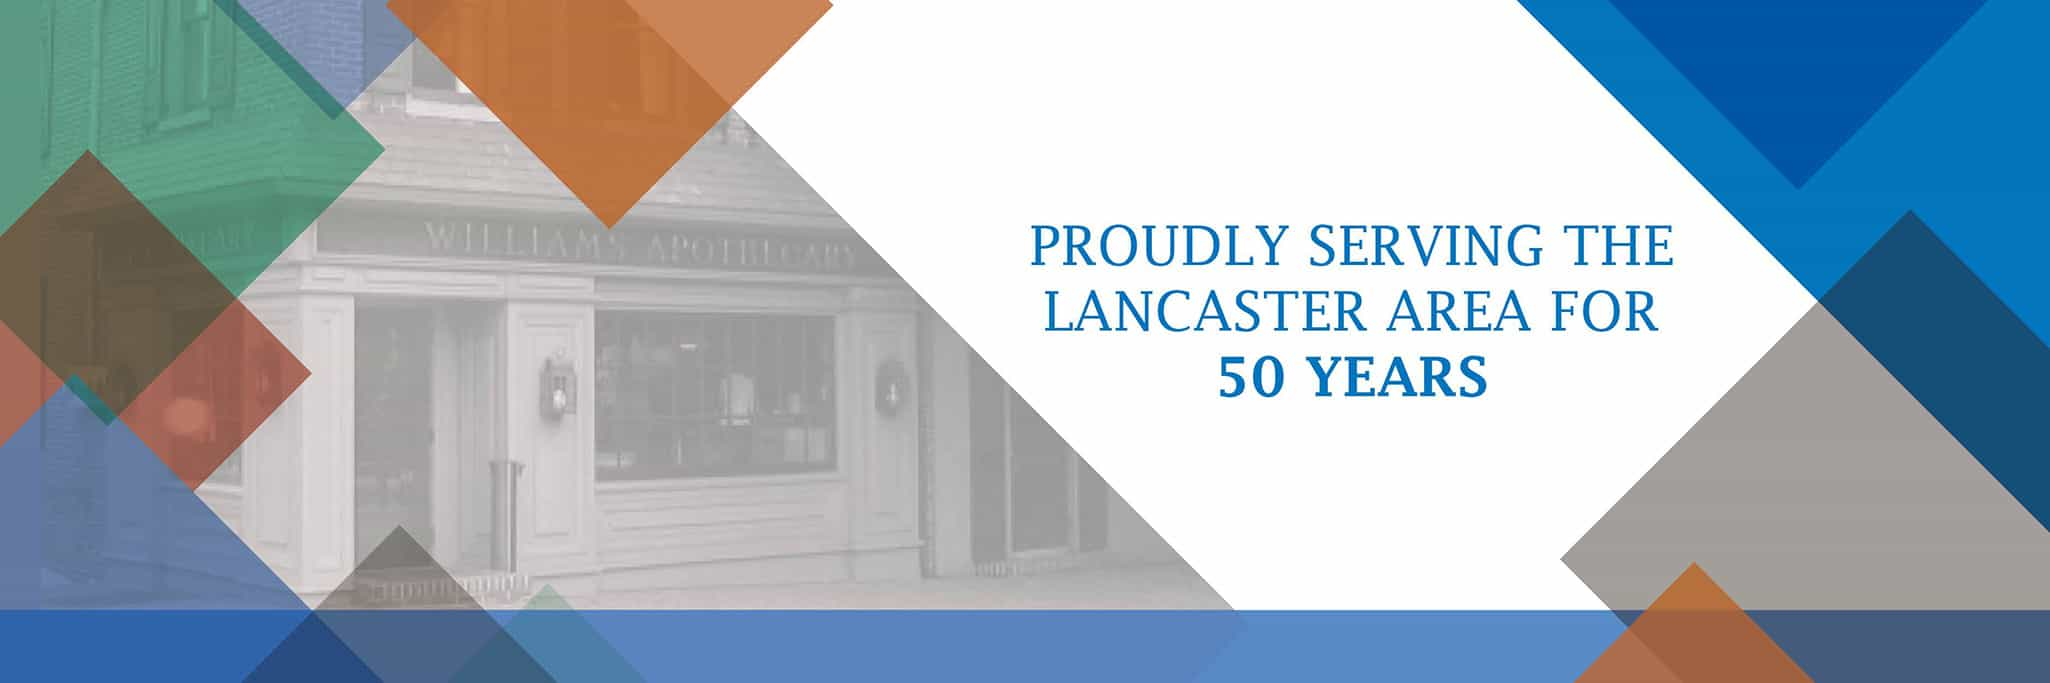 proudly serving the lancaster area for 50 years